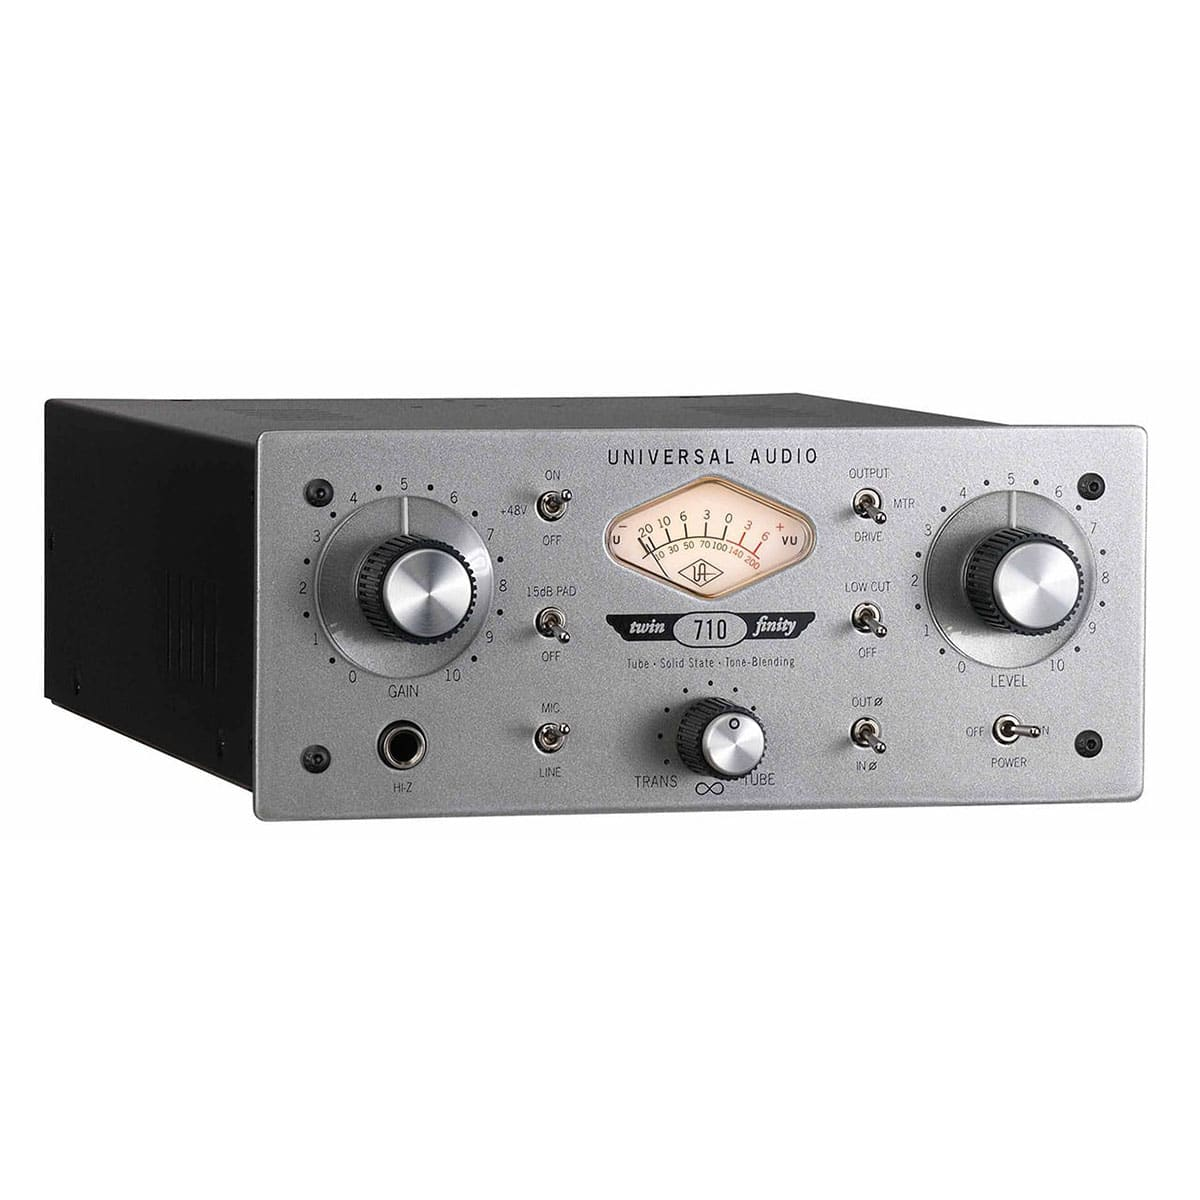 Universal Audio 710 twinfinity 03 Pro Audio, Outboard, Preamplificatori Microfonici, D.I./Reamp